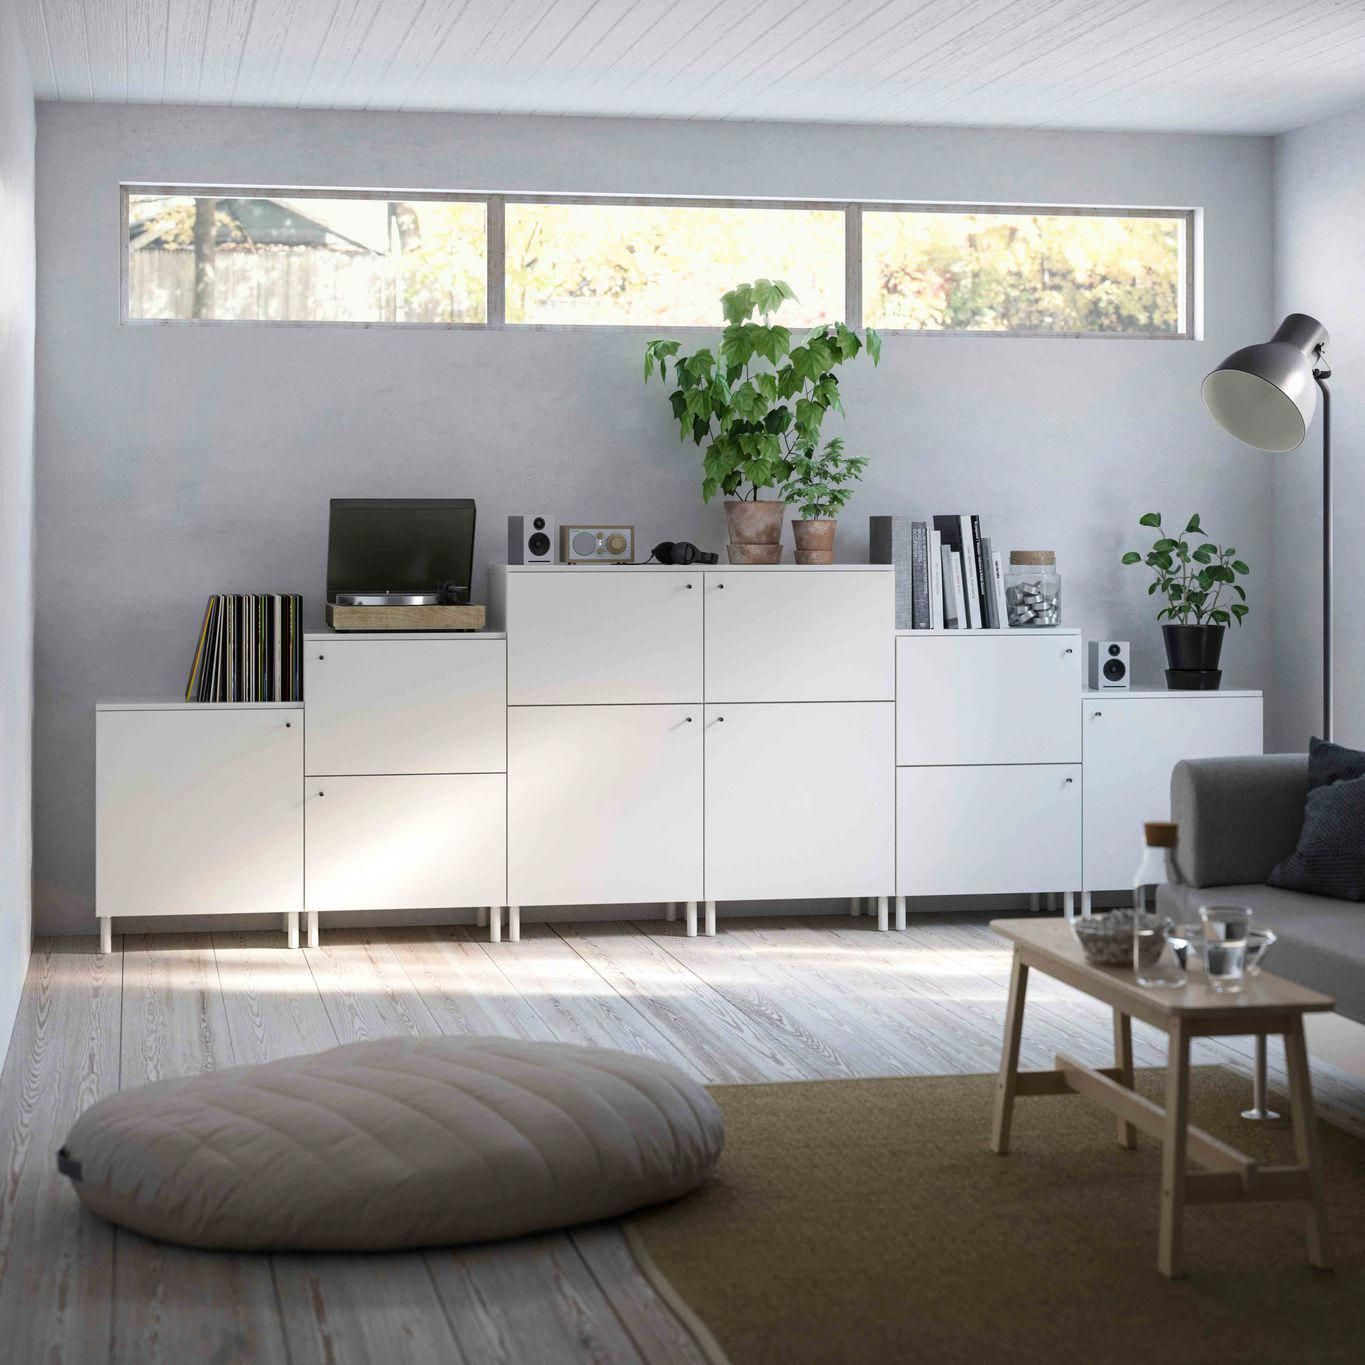 Why Platsa Is Ikea S Most Important Range Ikea Wardrobe Storage Ikeabedroom Ikea Wohnen Dachschrage Einrichten